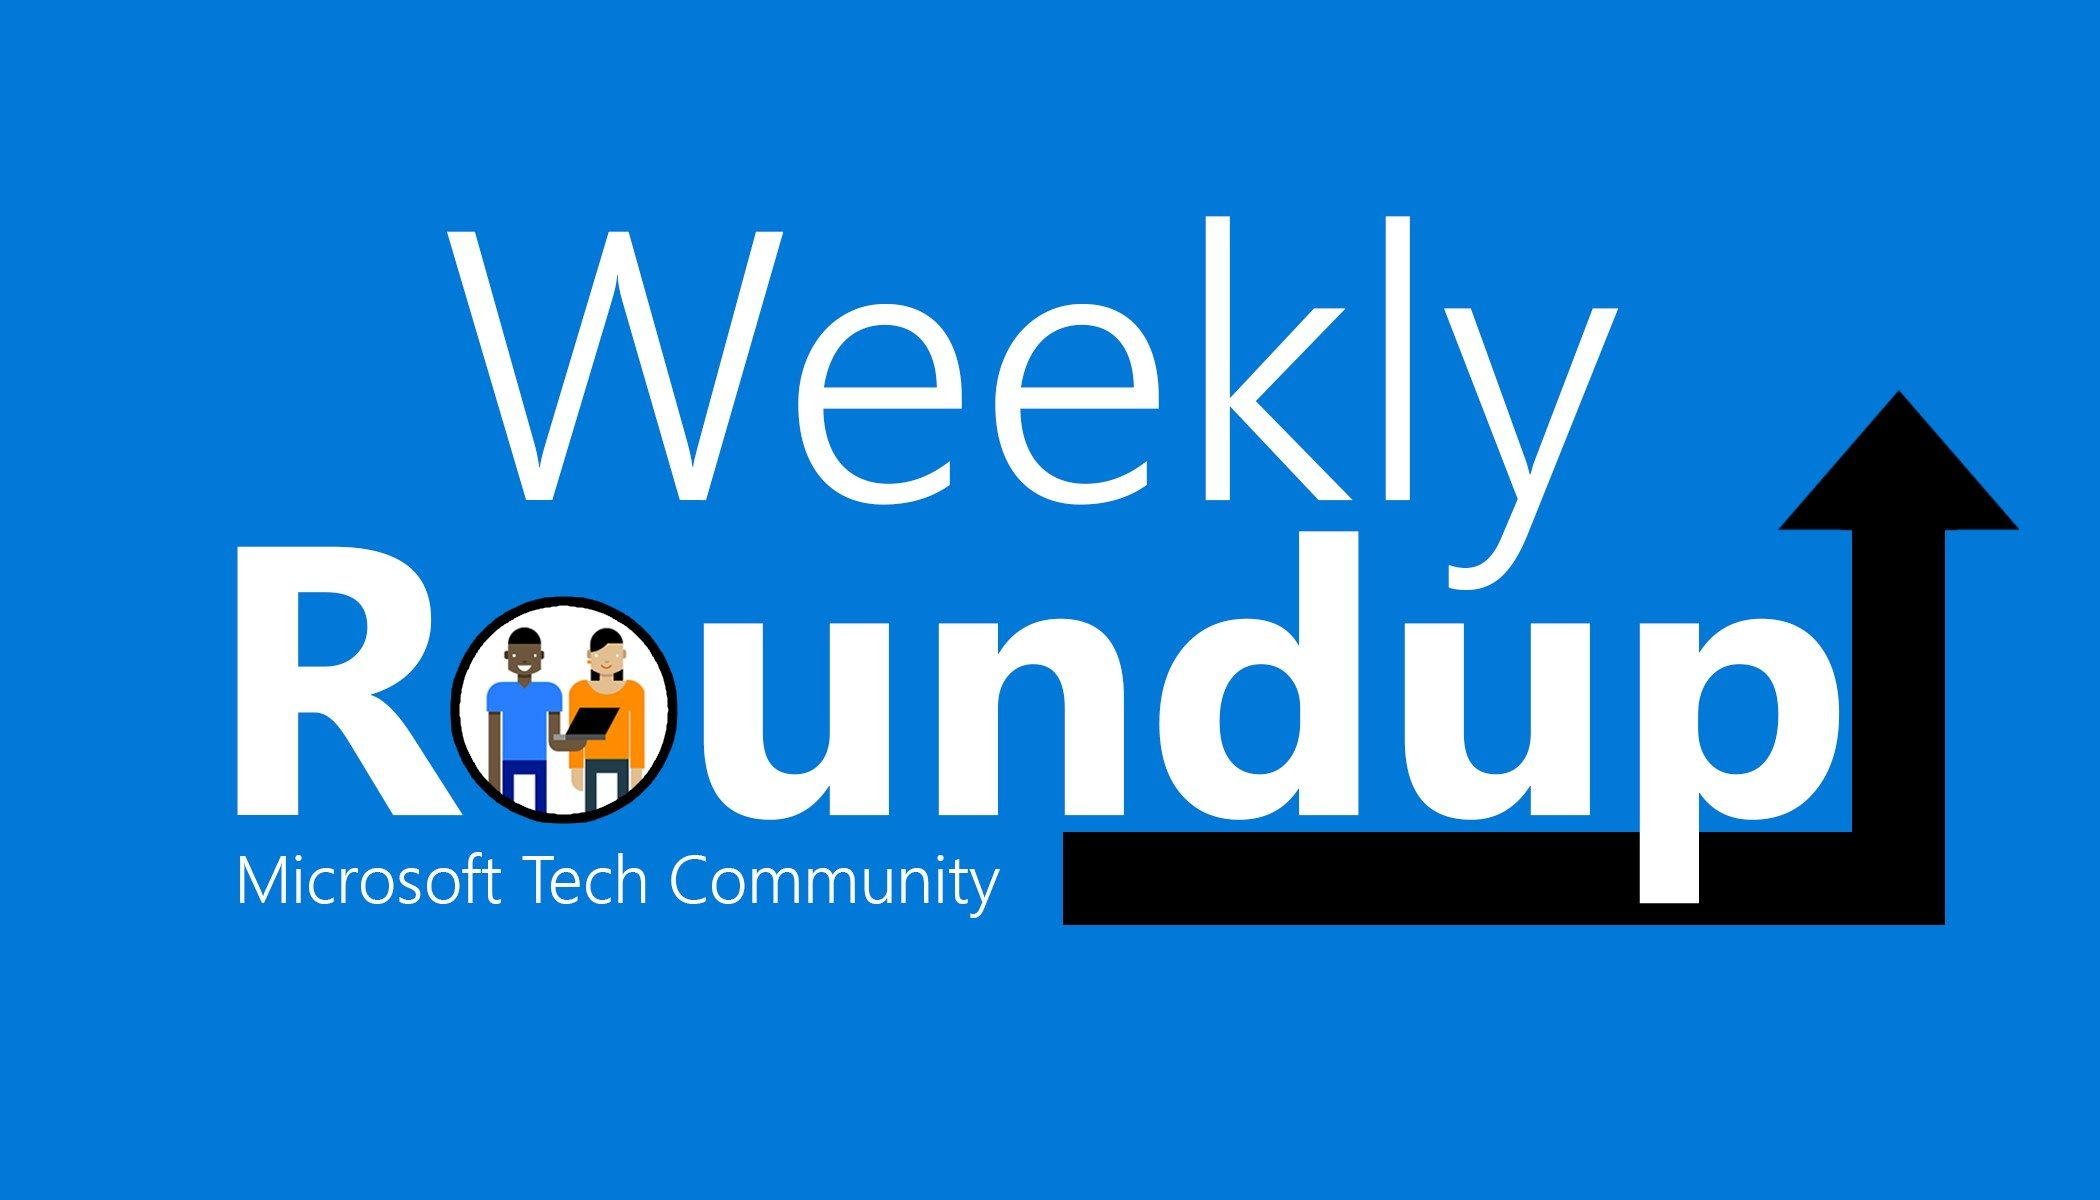 The March 27th Weekly Roundup is Posted!